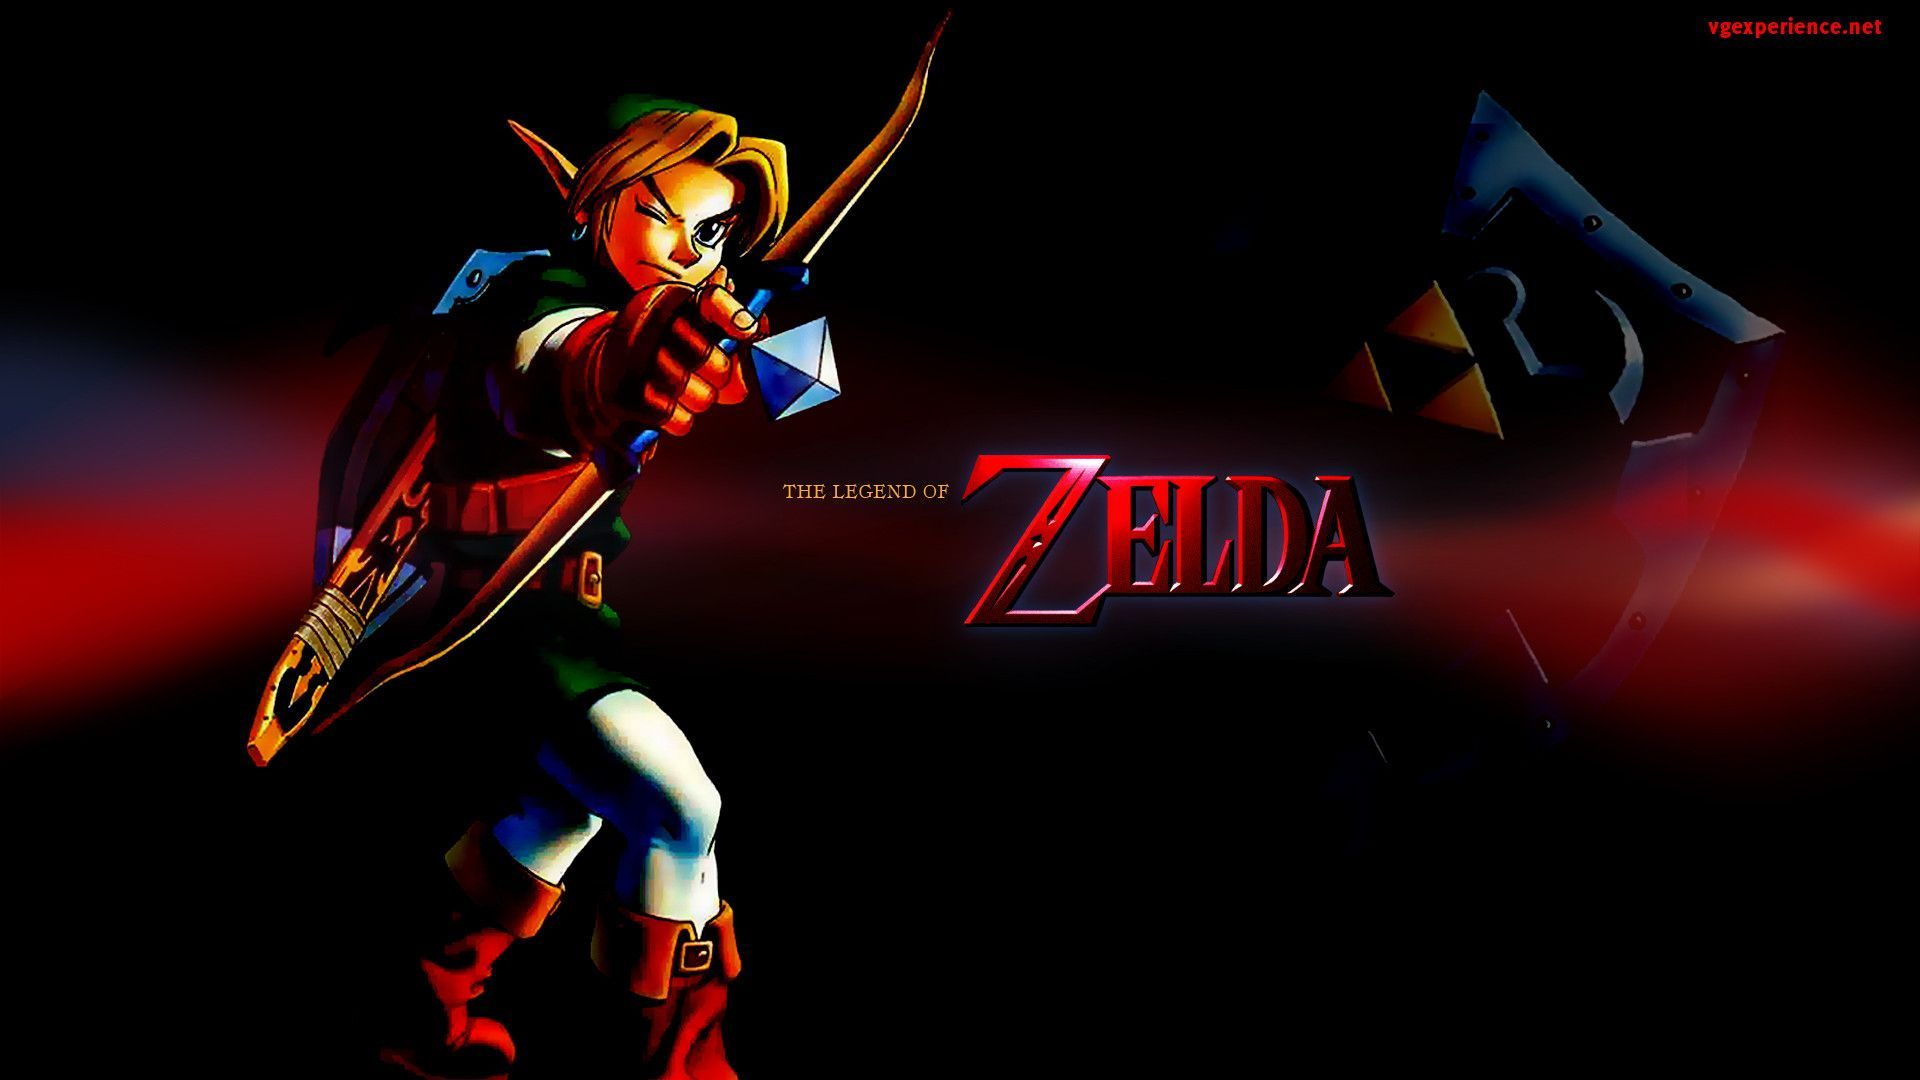 30 Wallpaper In High Quality The Legend Zelda Ocarina Time By